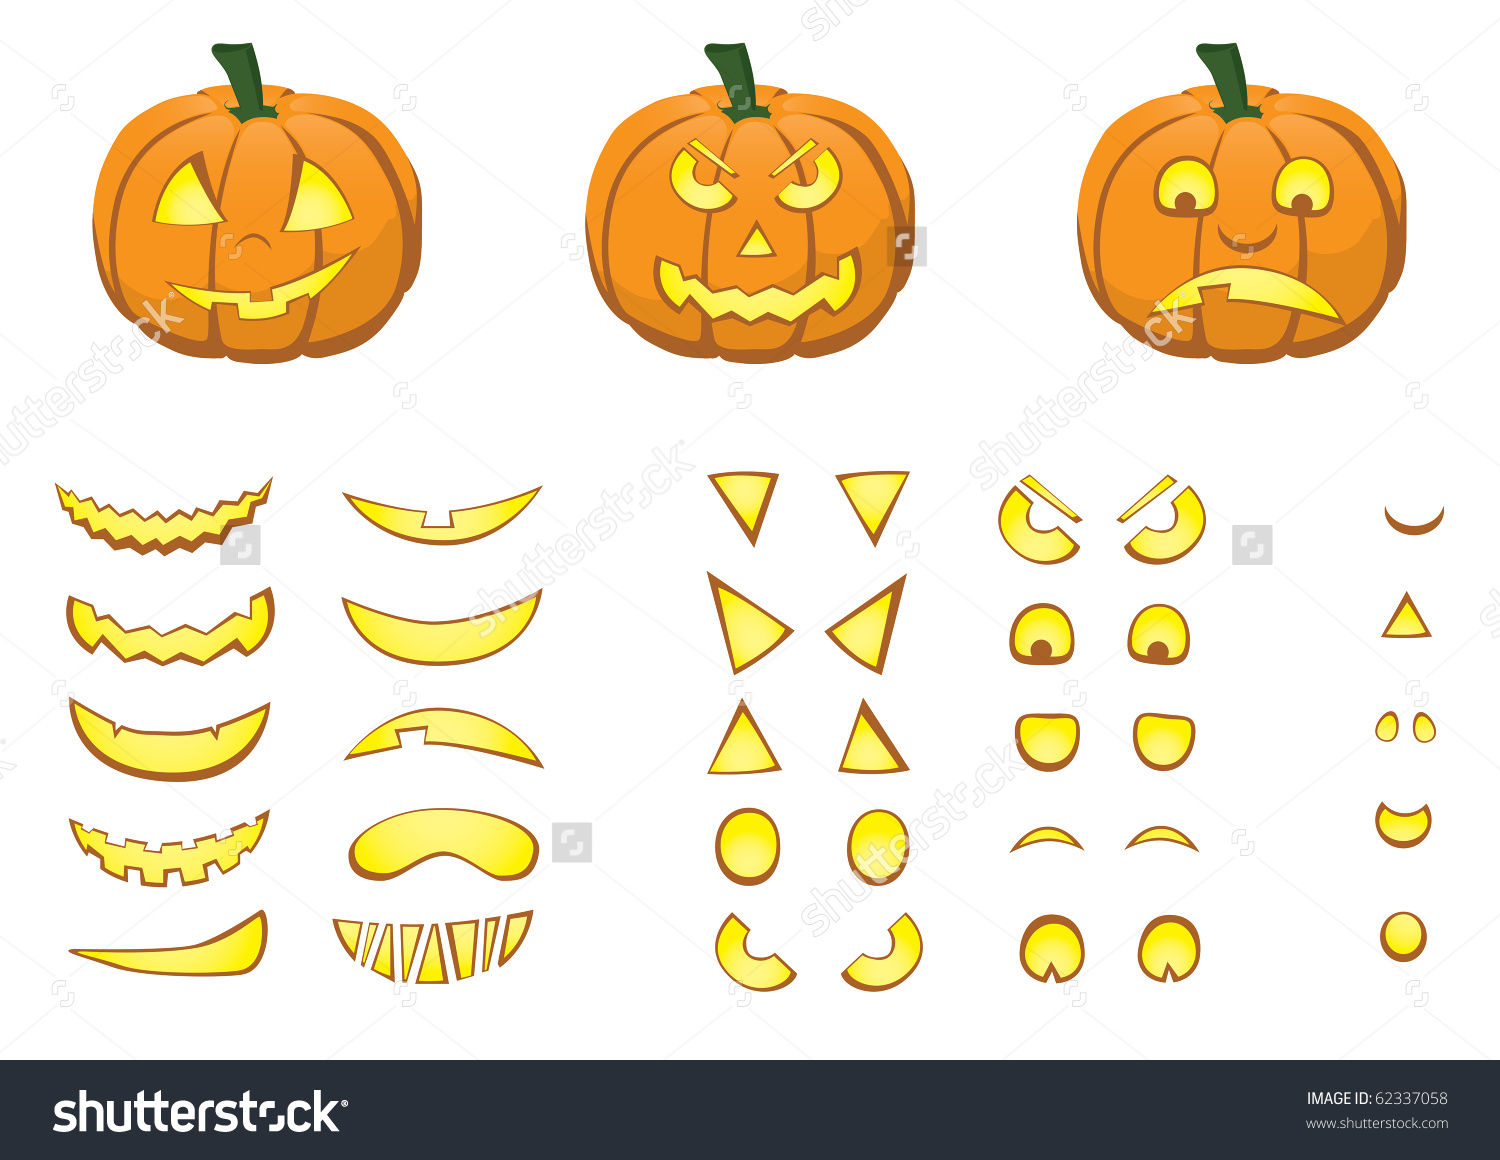 A Jack O'Lantern Pumpkin With Over 500 Combinations On Mouth, Eyes.